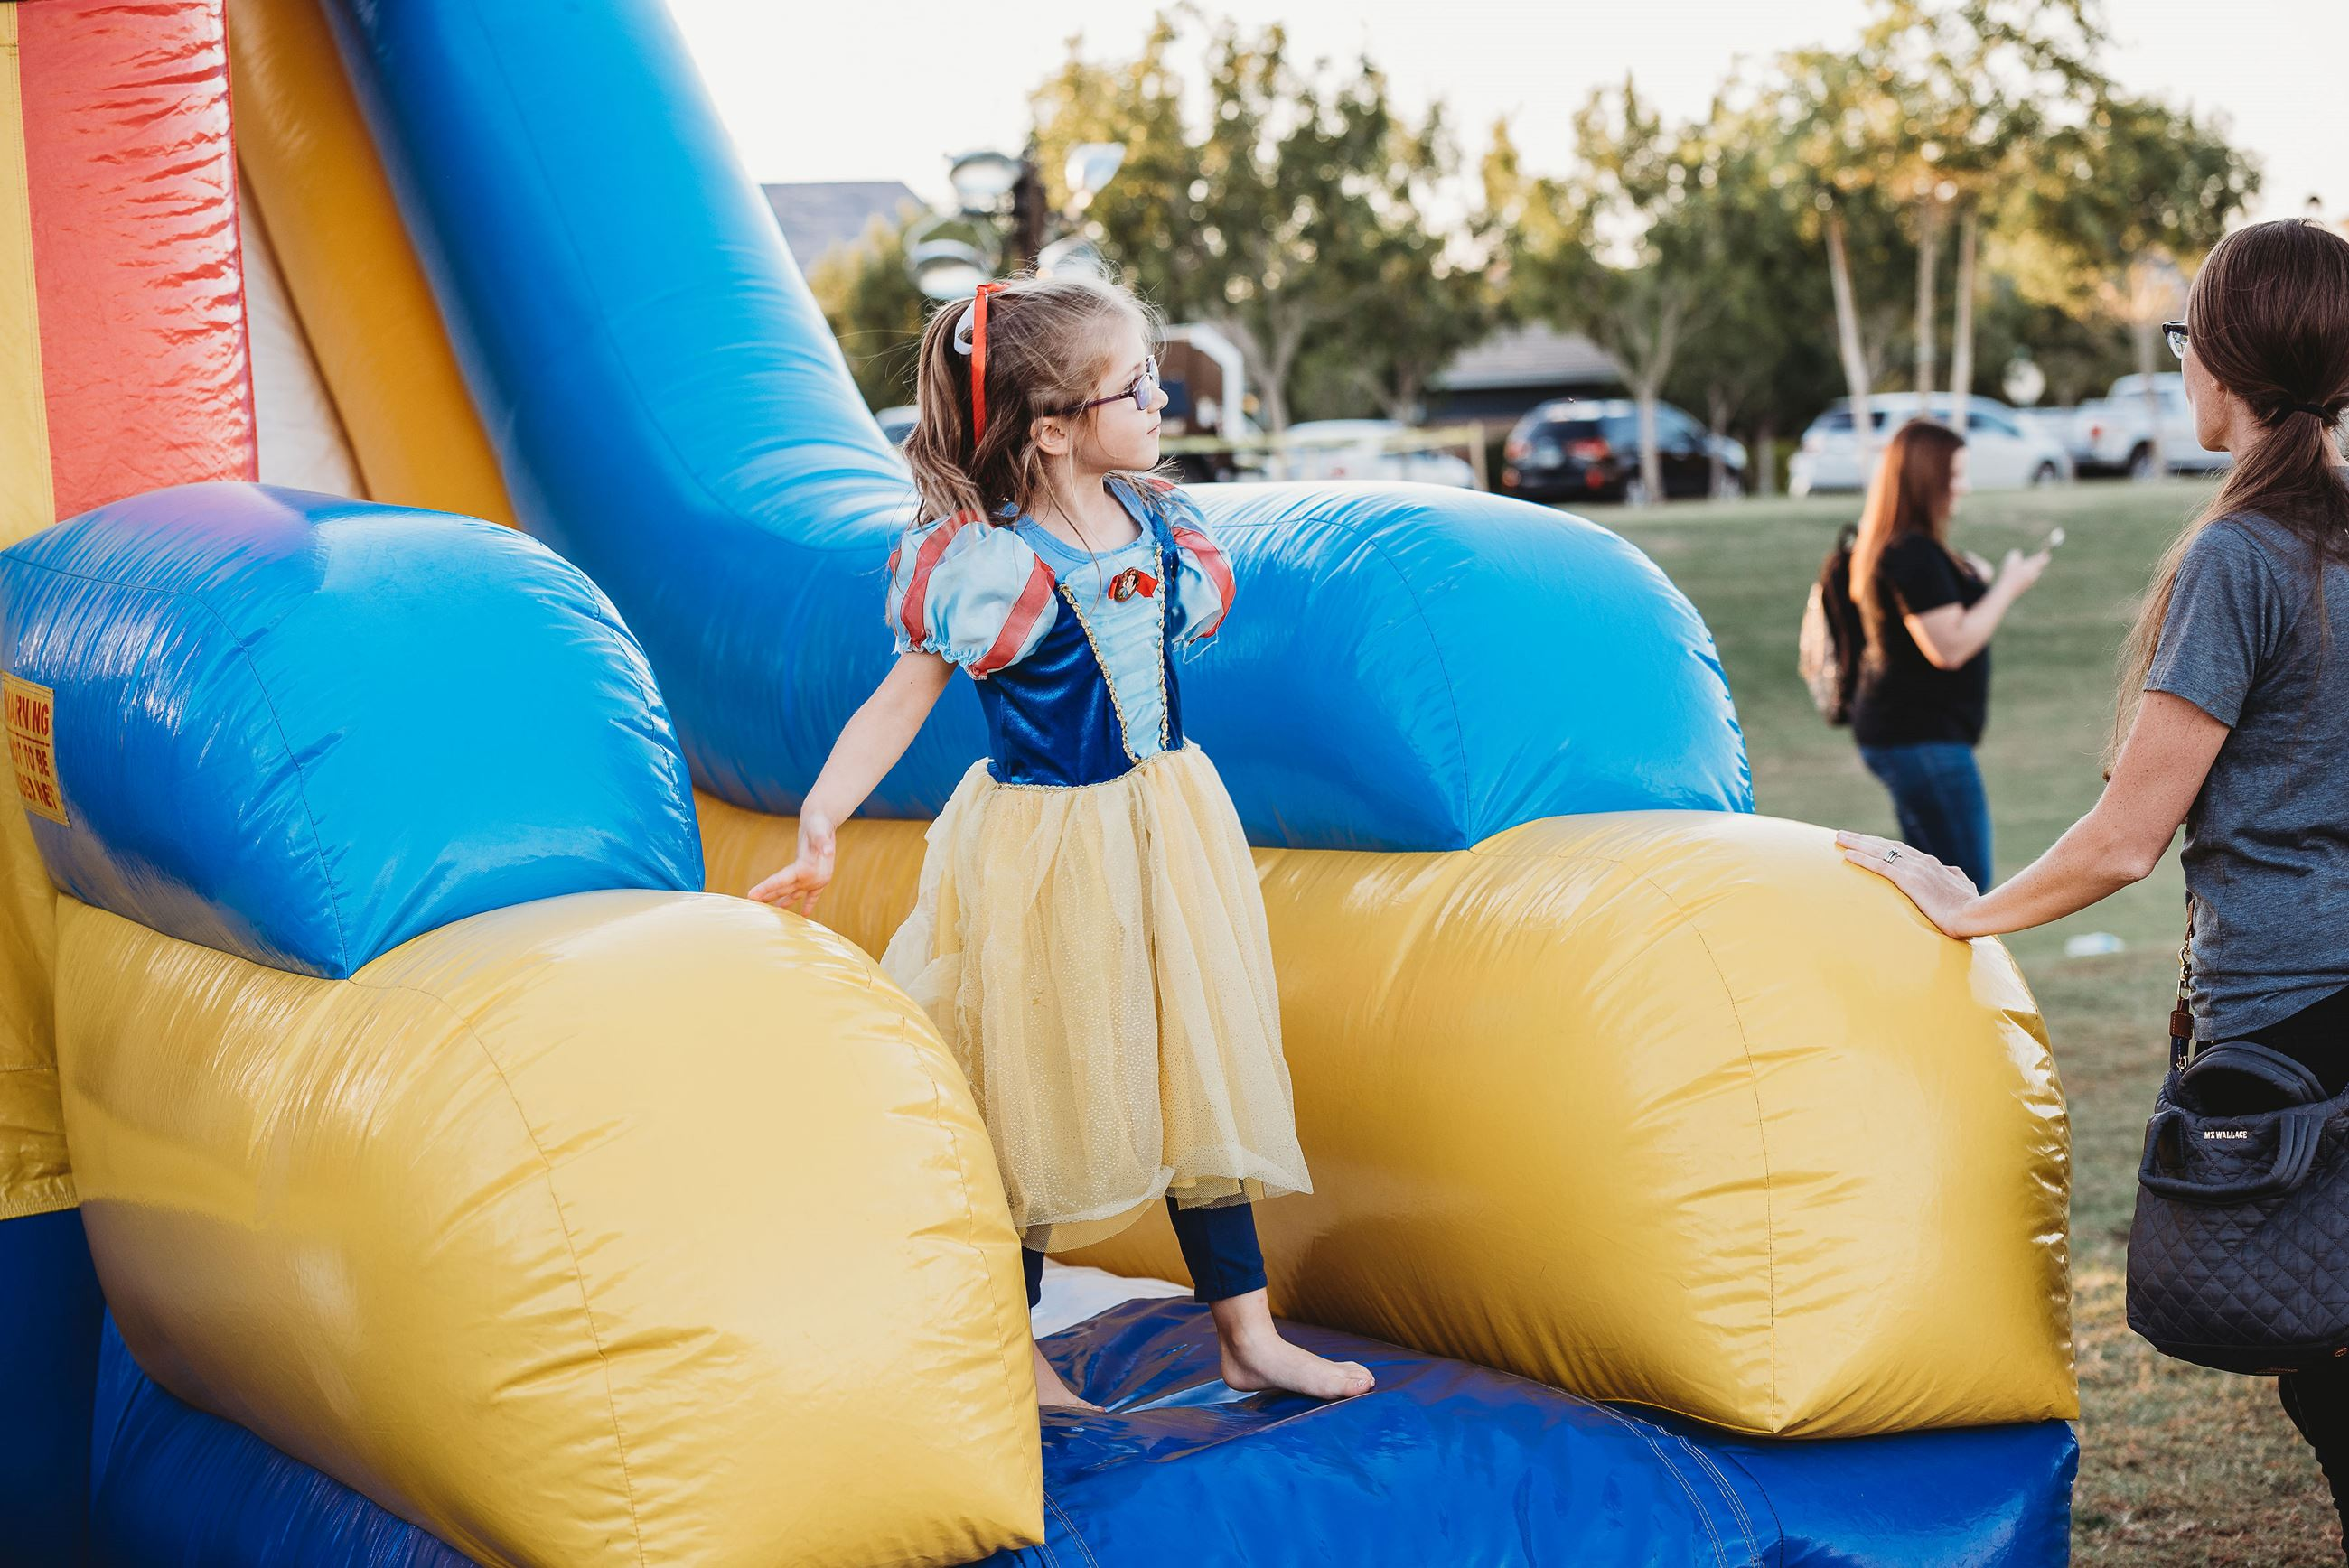 Young Girl Dressed as Snow White Standing at the Base of an Inflatable Slide